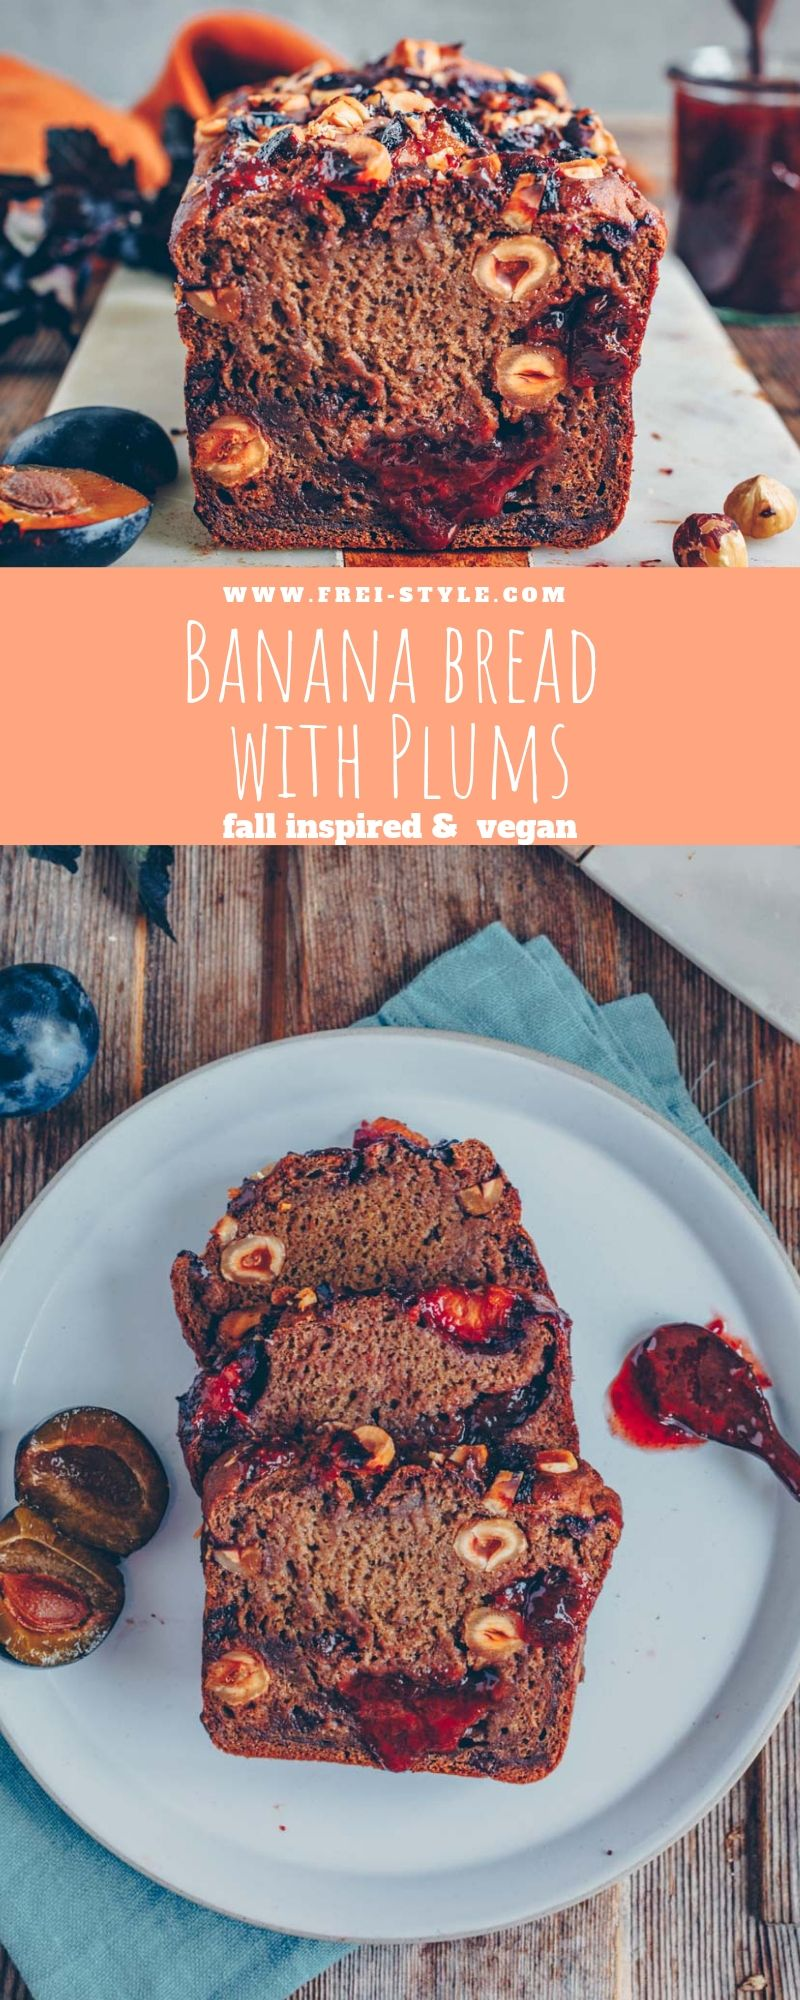 banana bread with plums and hazelnuts